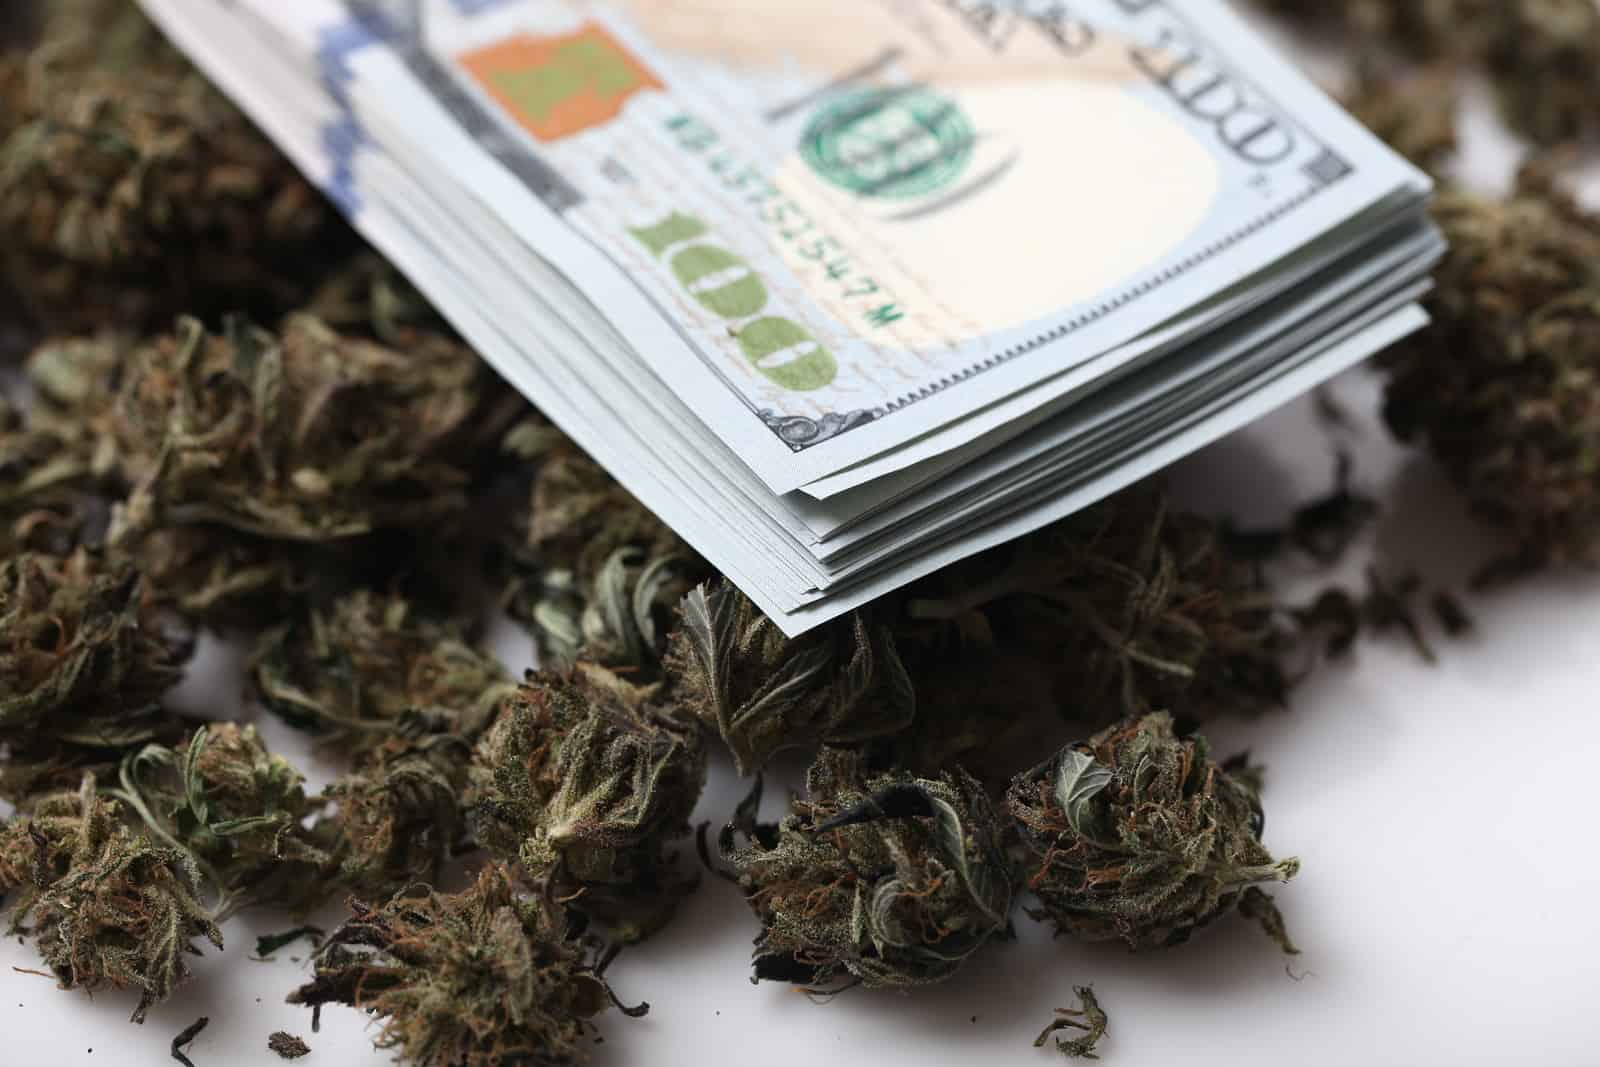 Safe Banking Act Included In U.S. House's Coronavirus Relief Bill. Stack of money on weed buds.